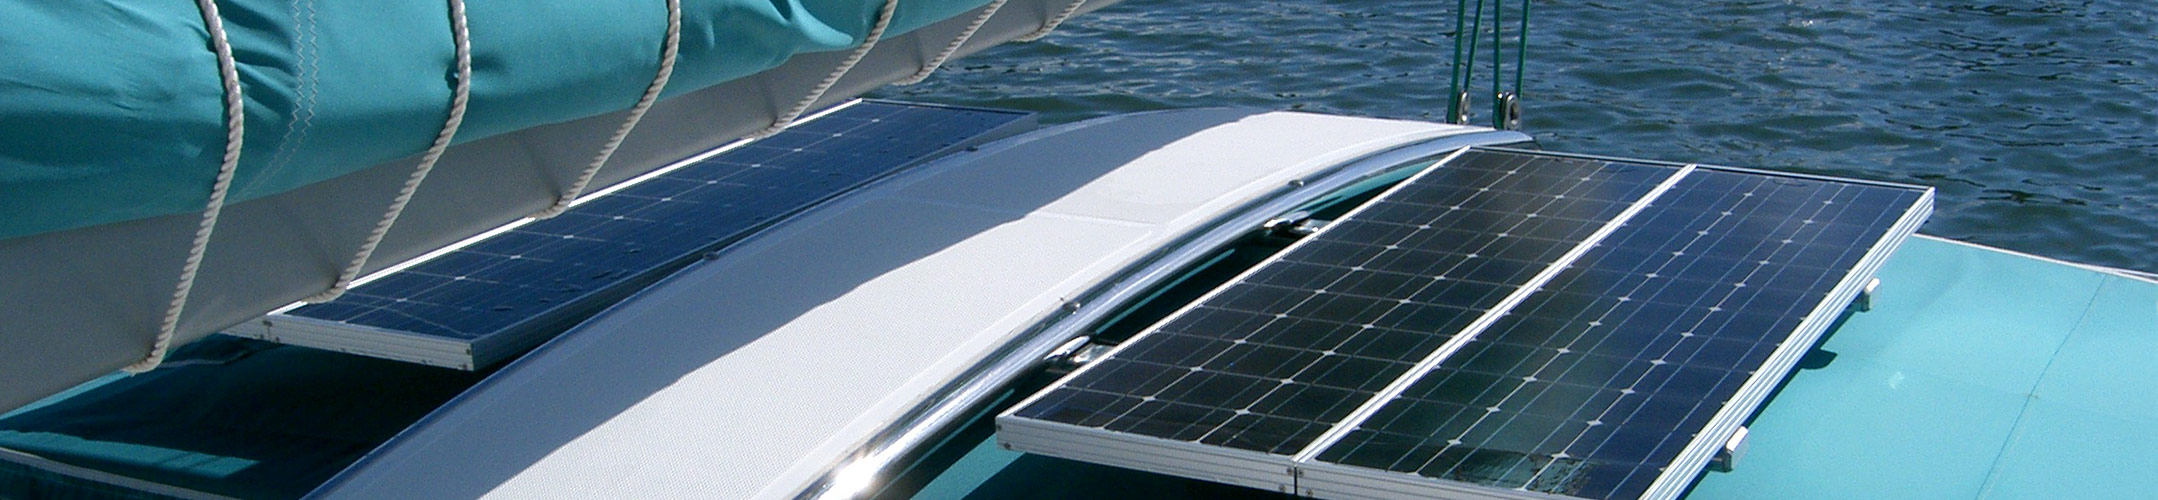 solar panels on yacht roof